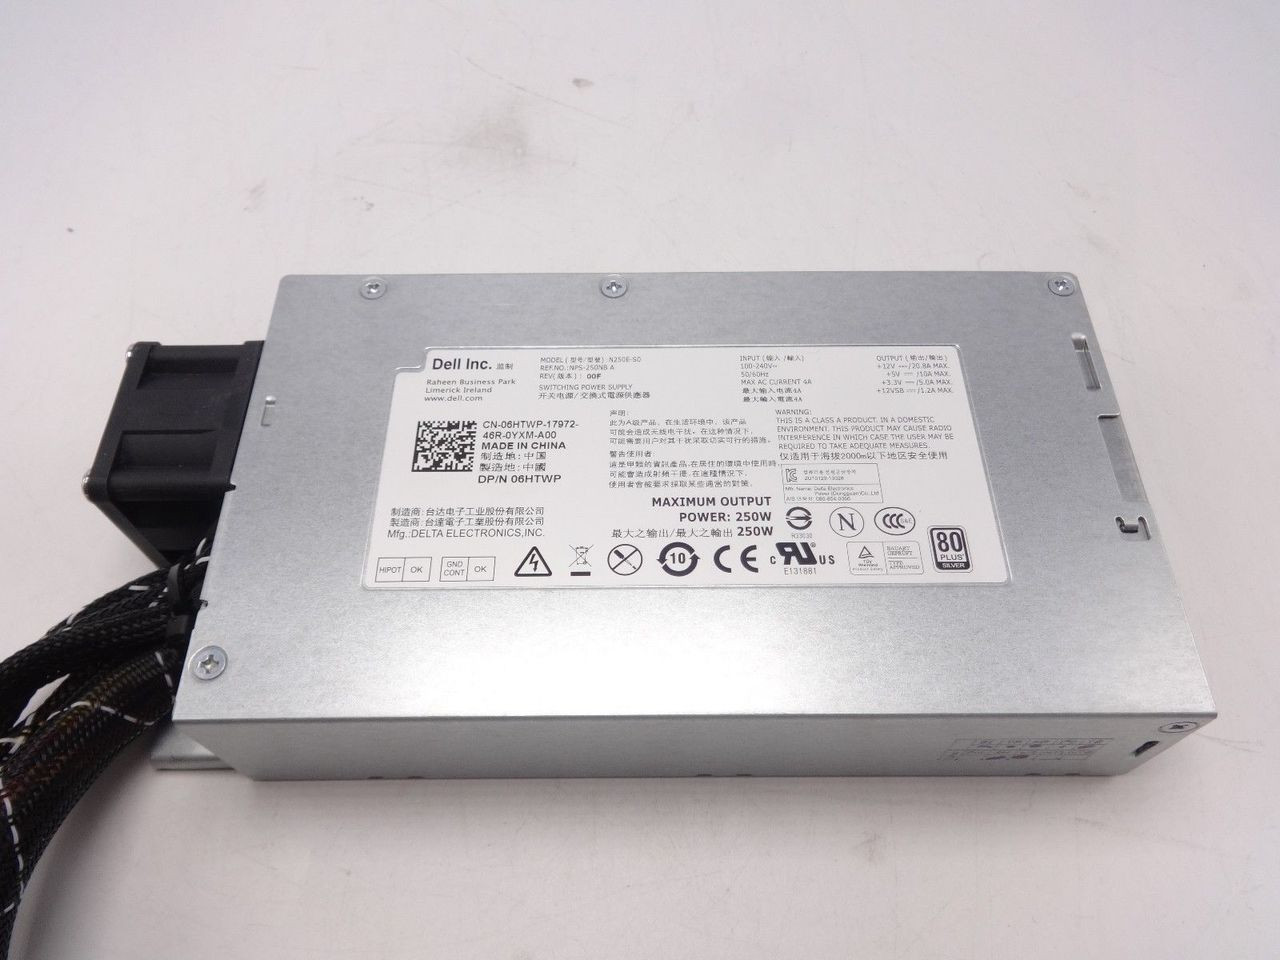 Dell 6HTWP 250W Power Supply R210